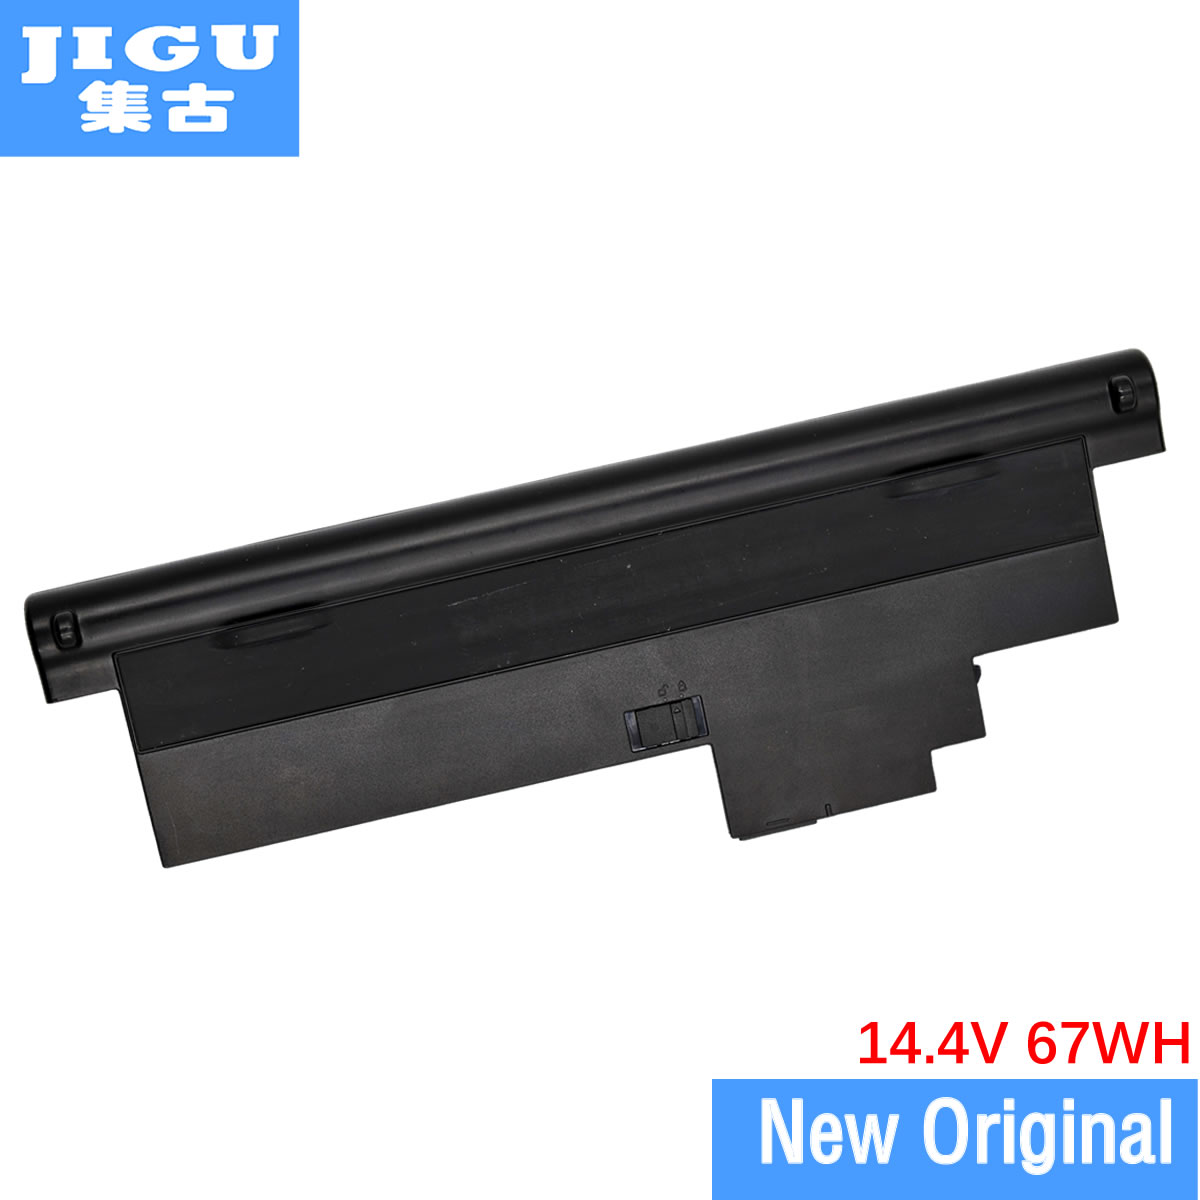 JIGU 43R9257 42T4565 42T4658 42T4827 Original laptop Battery For Lenovo ThinkPad X200t x201t X200 Tablet 2266 7448 7450 jigu original laptop battery for lenovo for thinkpad sl400 sl410 sl410k sl500 sl510 t410 t410i t420 t420i t520 w510 w520